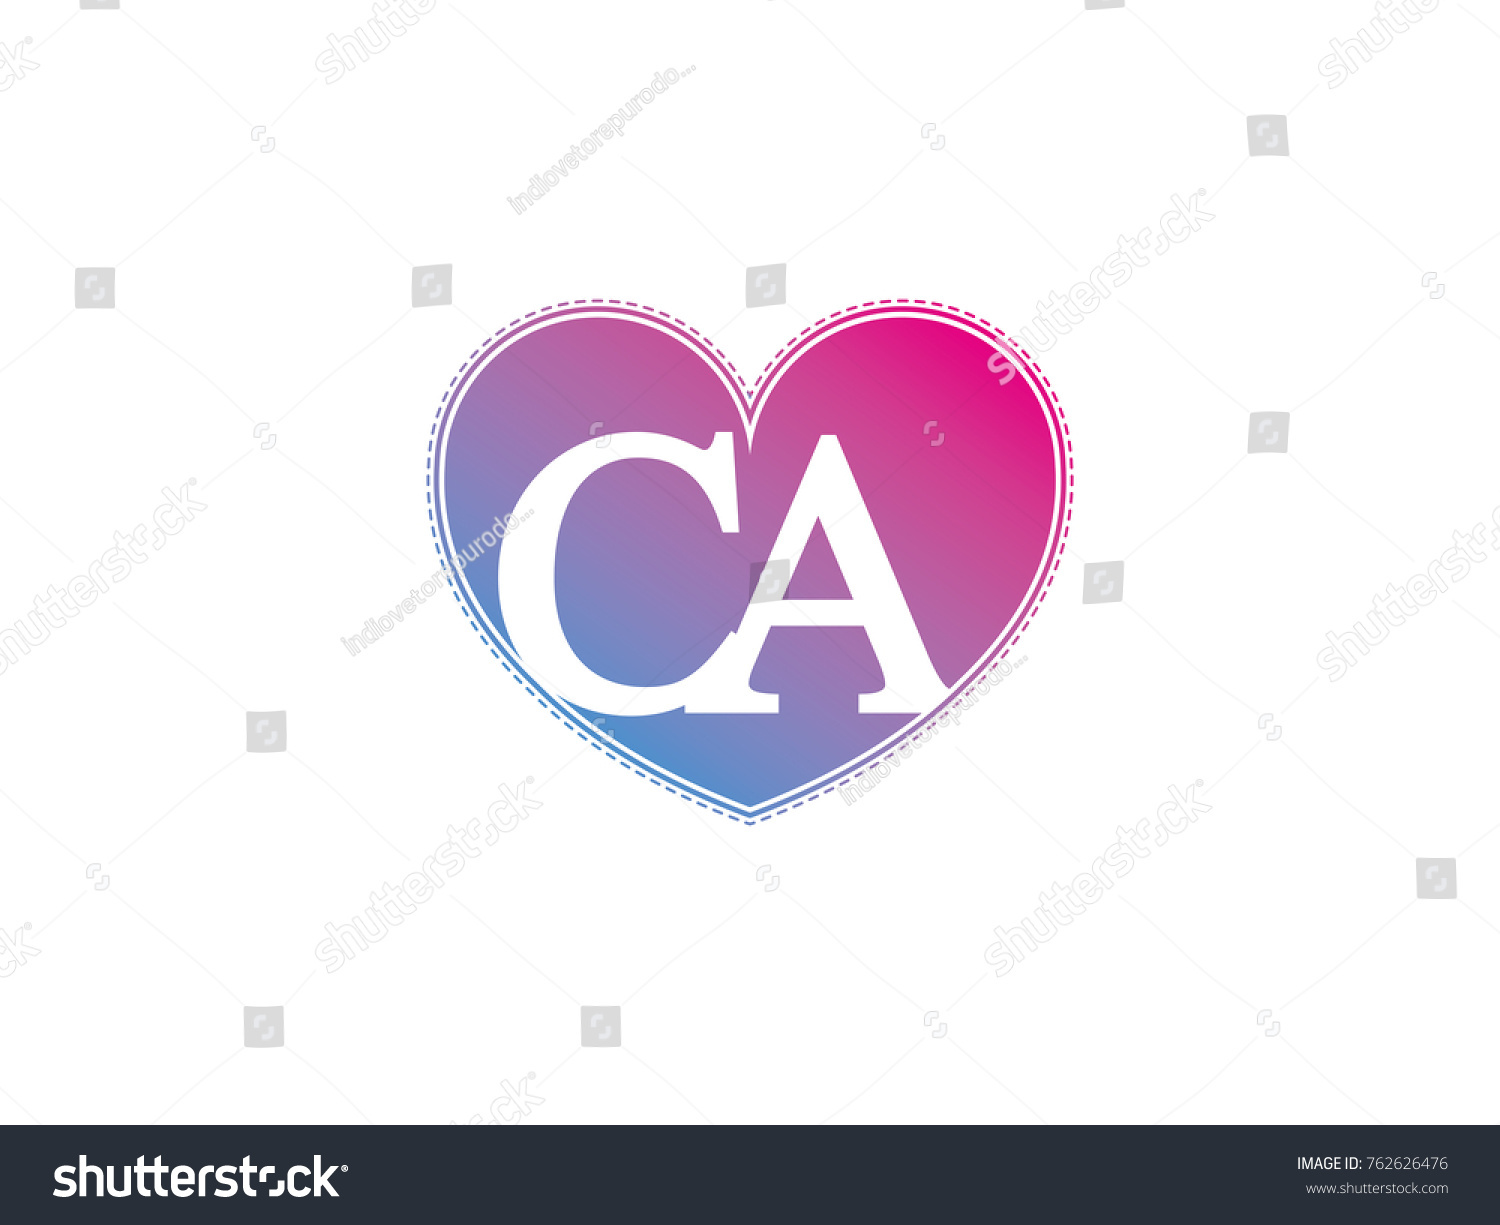 Initial letter ca heart symbol logo stock vector 762626476 the initial letter ca in the heart symbol as a logo sign and decoration biocorpaavc